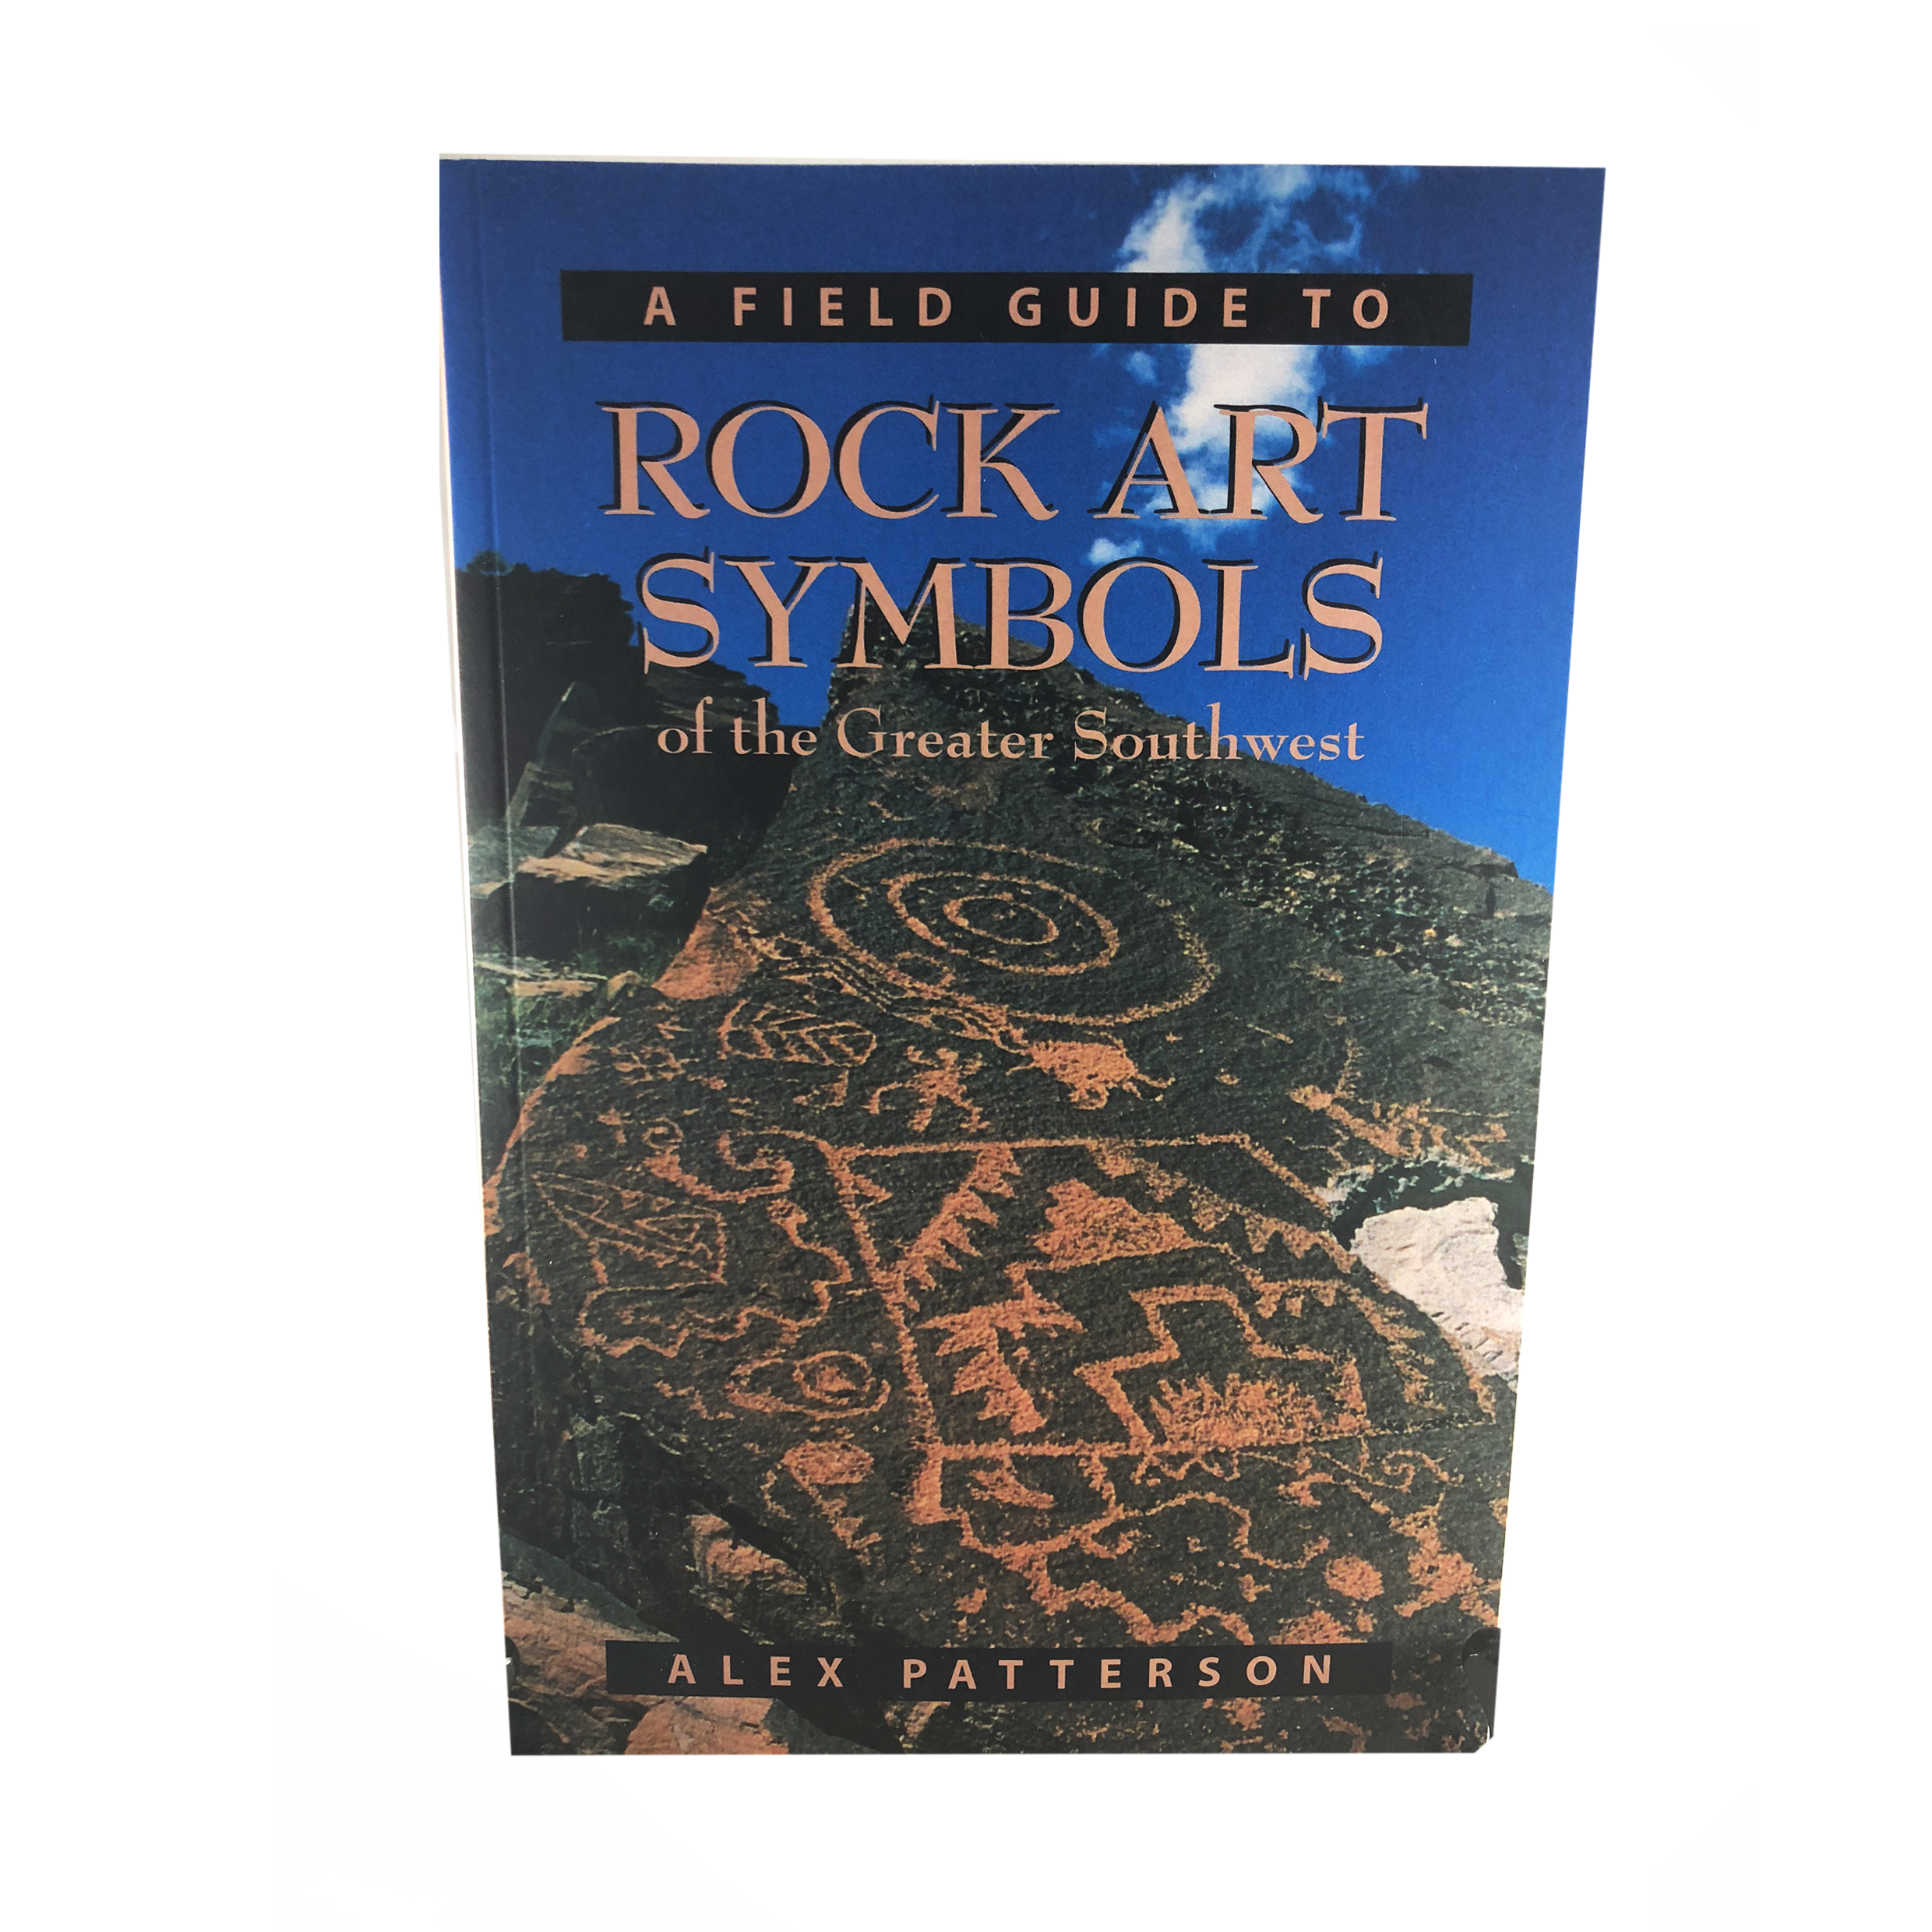 Rock Art Symbols of the Greater Southwest by Alex Patterson